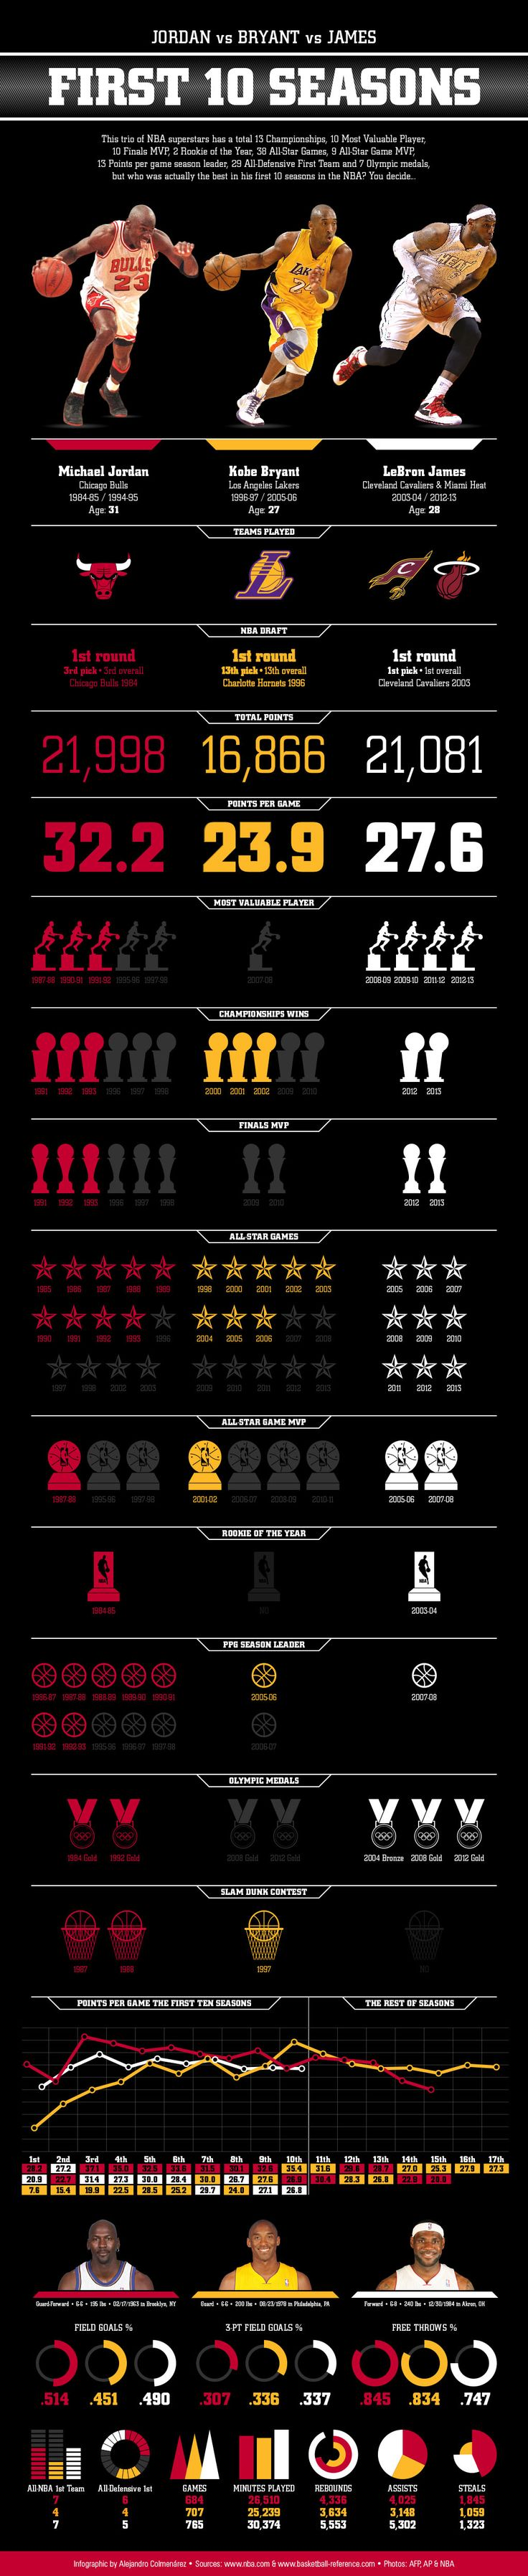 INFOGRAPHIC: Michael Jordan, Kobe Bryant and LeBron James After Their First 10 Seasons